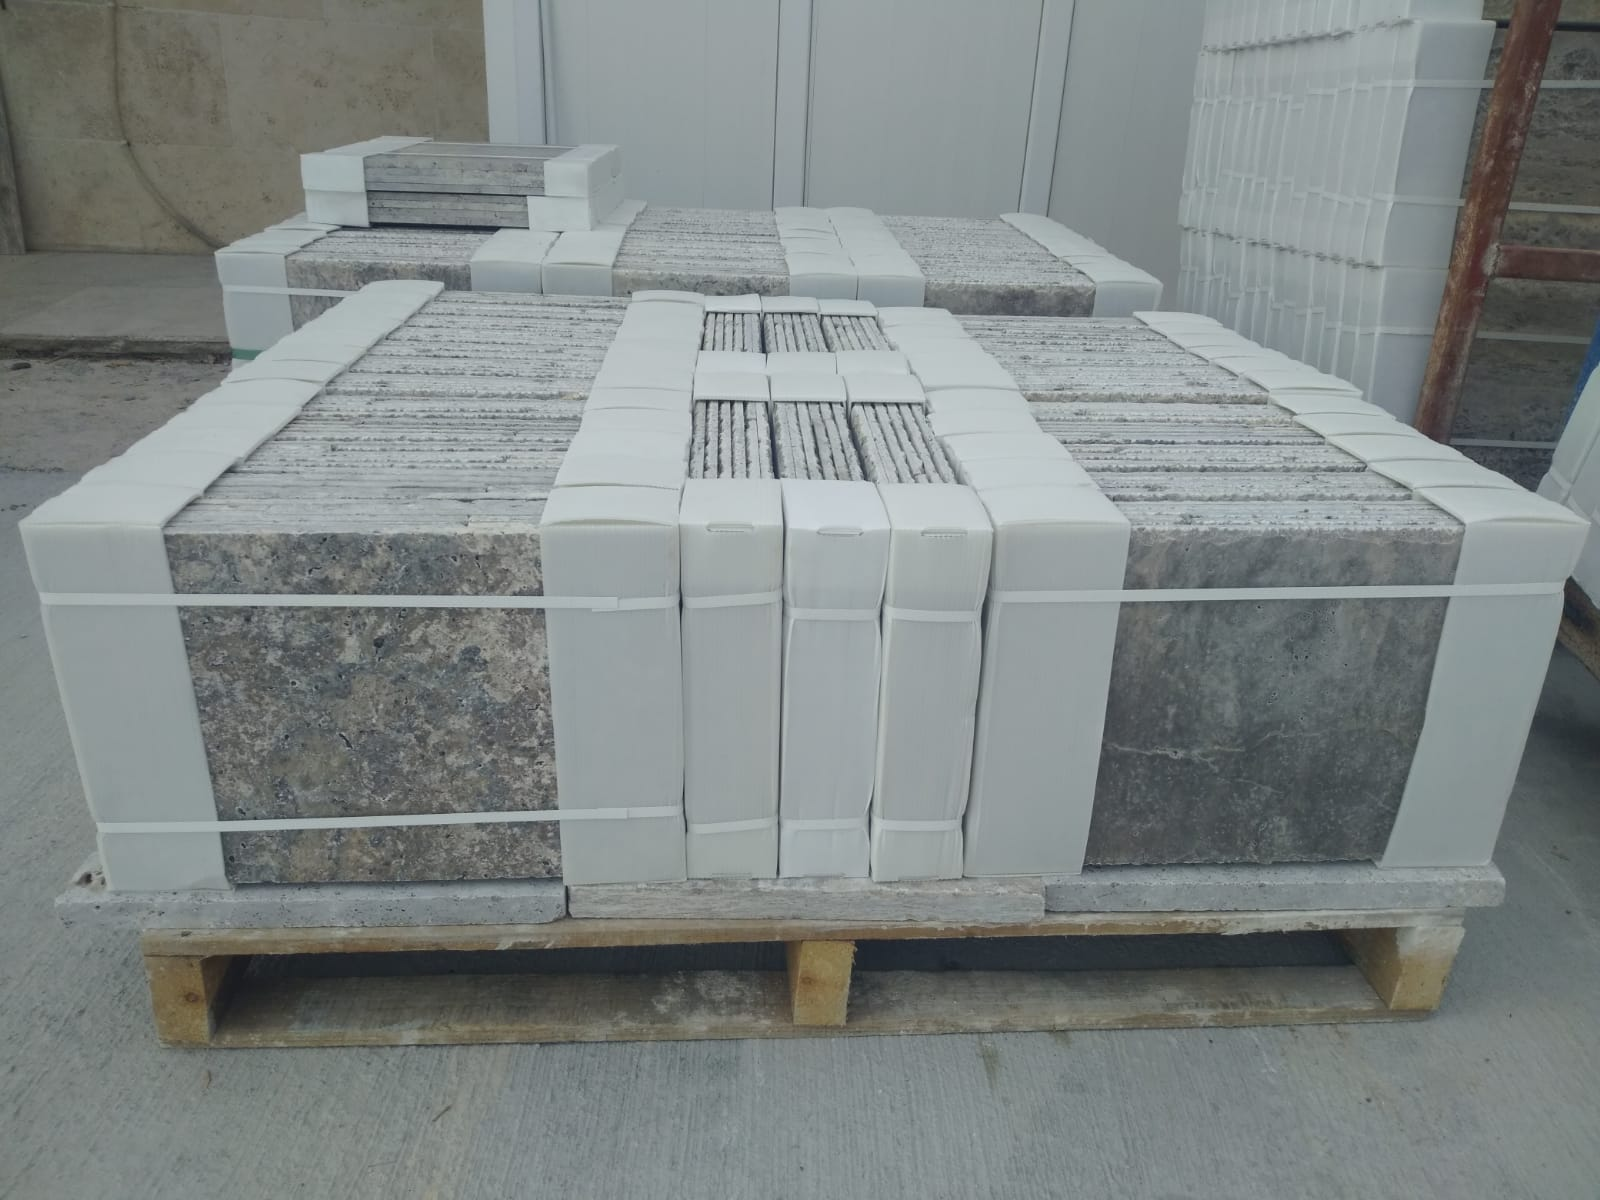 Silver Travertine Tiles Grey Travertine Tiles for Flooring